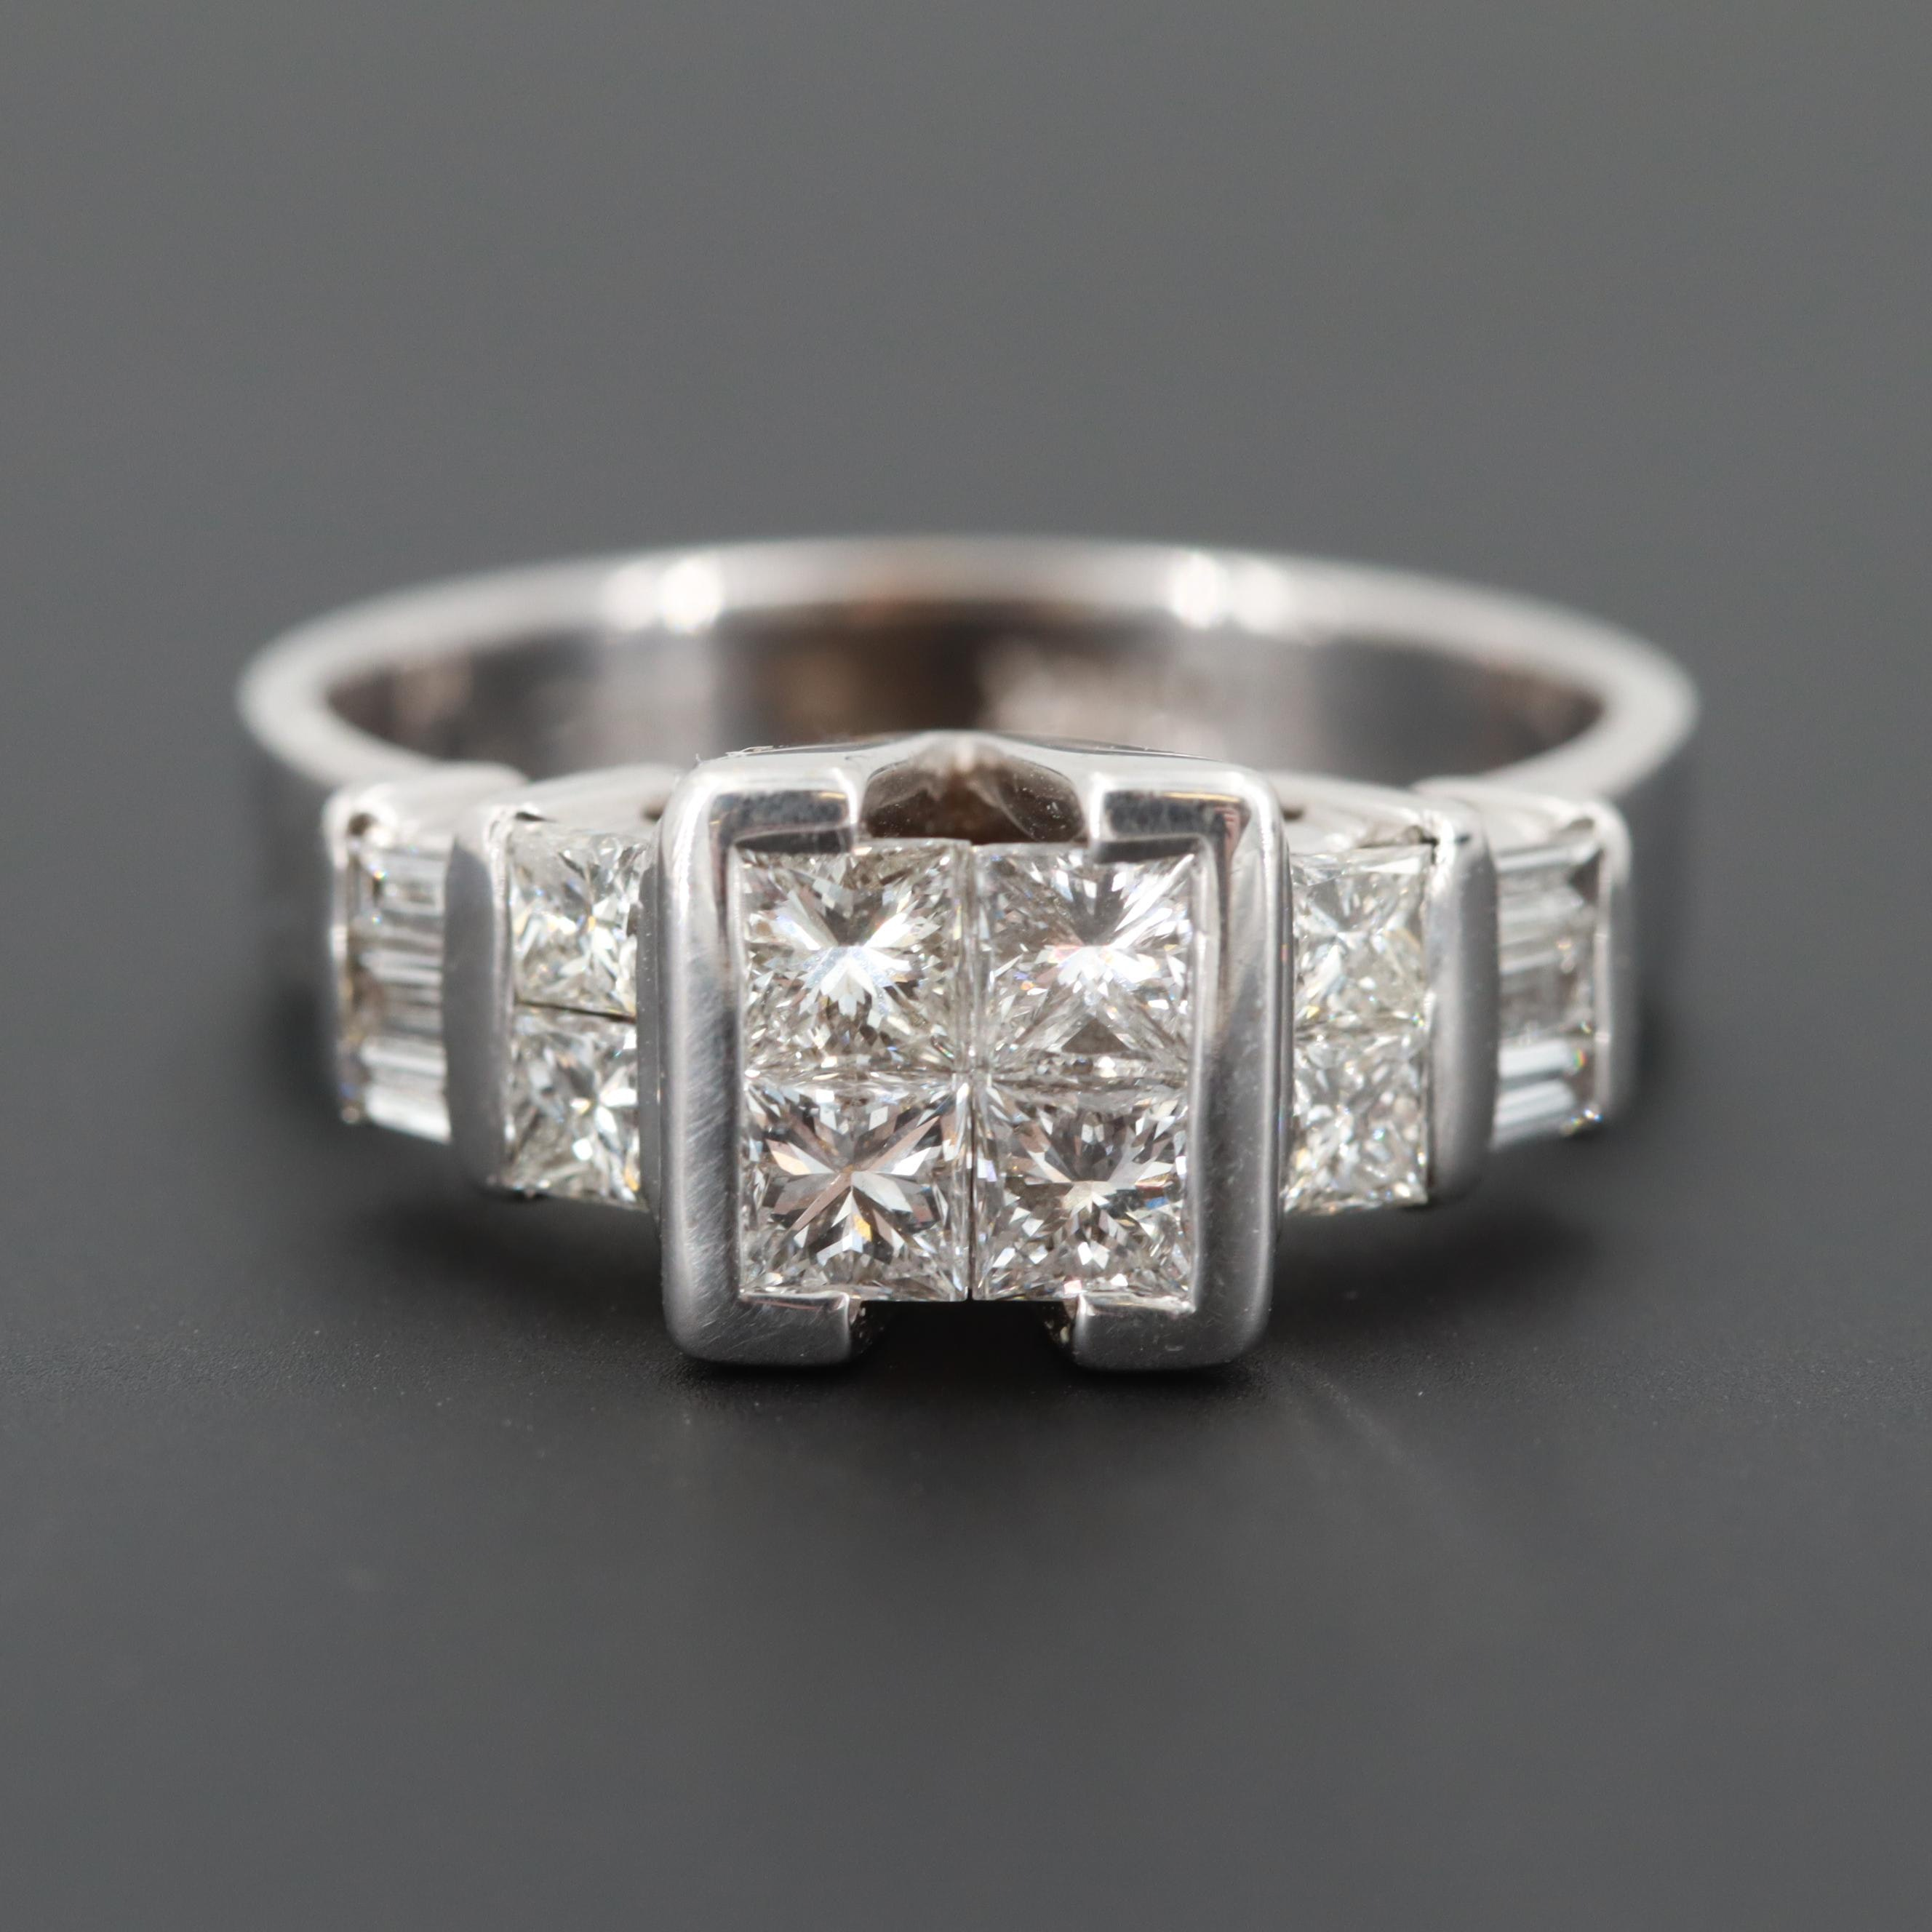 14K White Gold 1.34 CTW Diamond Ring